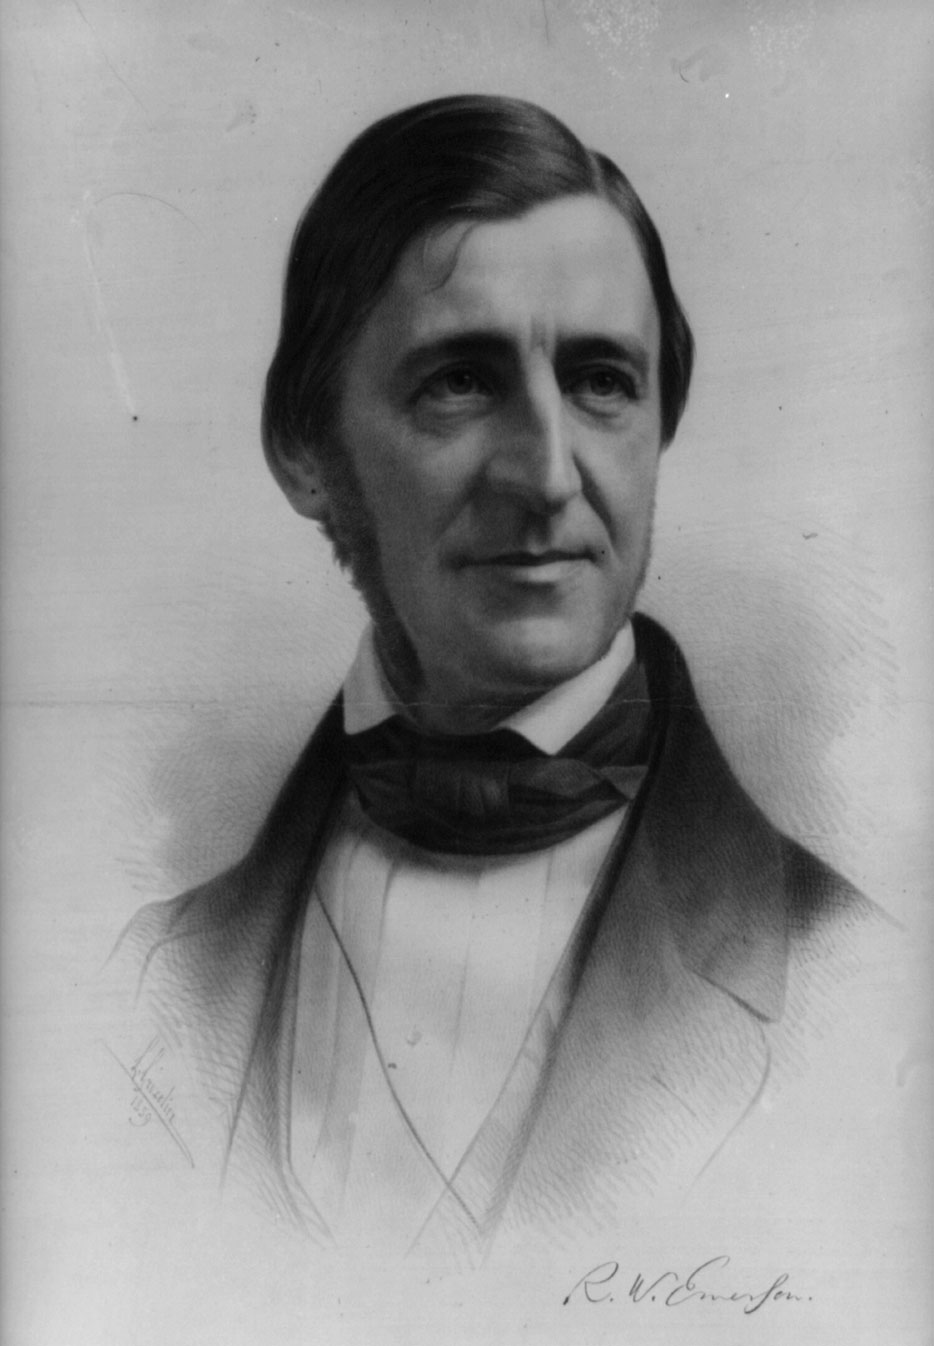 a biography of ralph waldo emerson Ralph waldo emerson: biography back next  before there was oprah, before there was the secret, before every self-help guru on the internet or tv was telling us to tap into our inner truth, there was ralph waldo emerson.